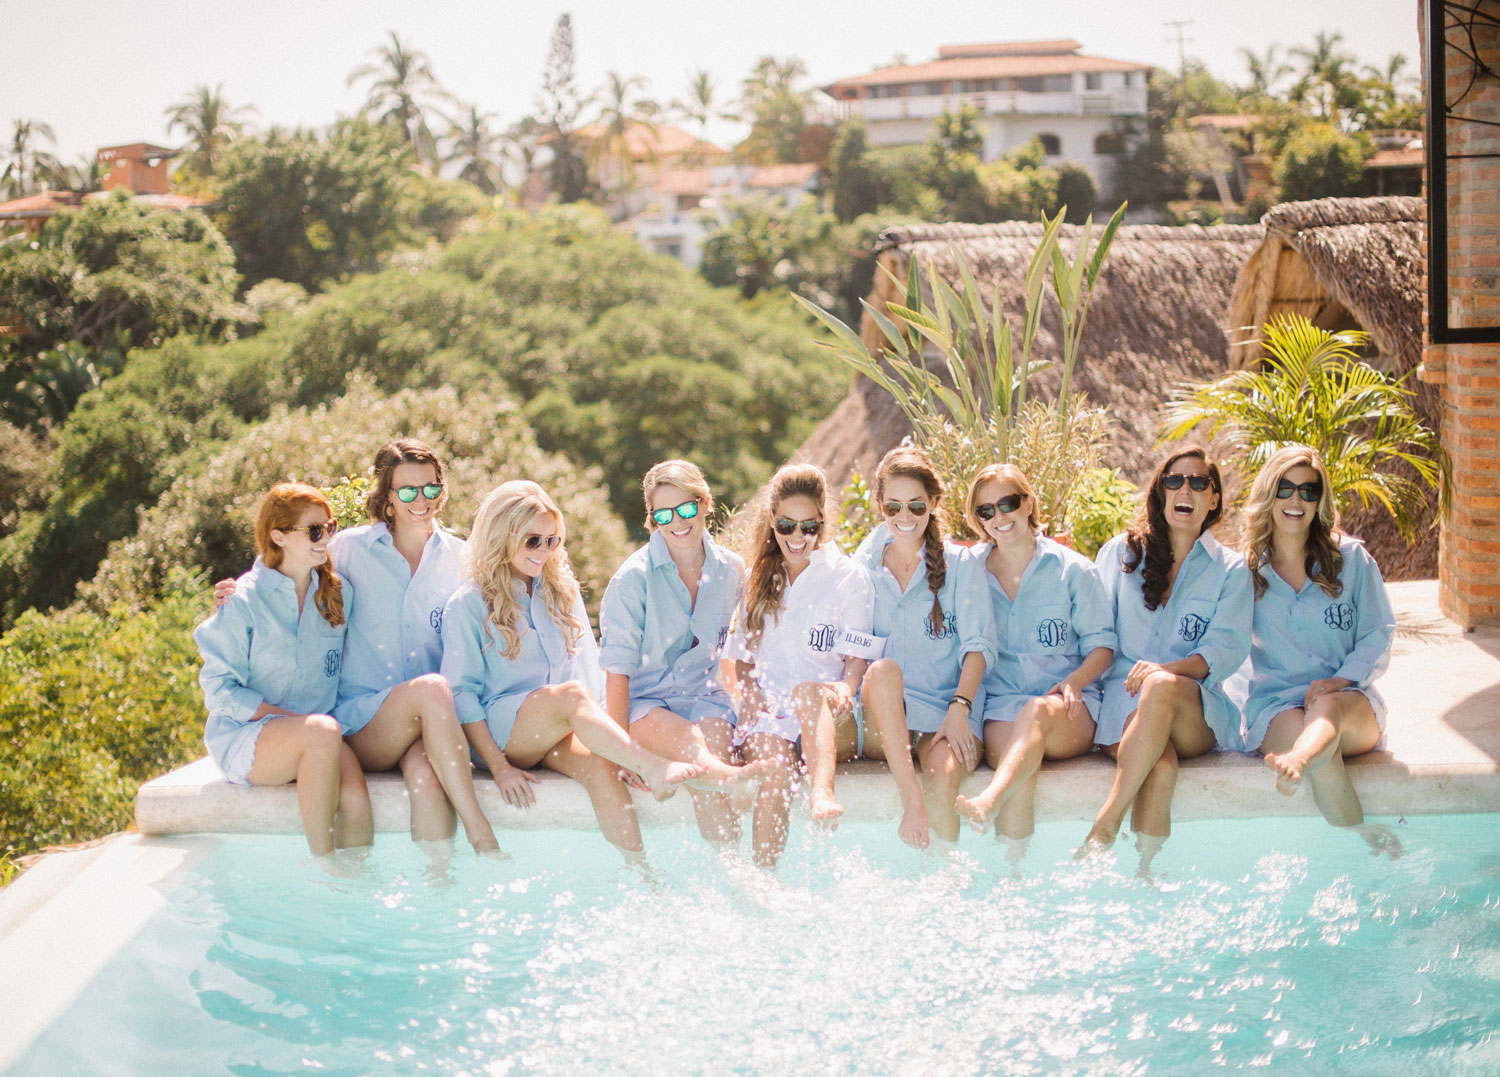 Bride and bridesmaids in button up shirts sunglasses splashing feet in pool destination wedding